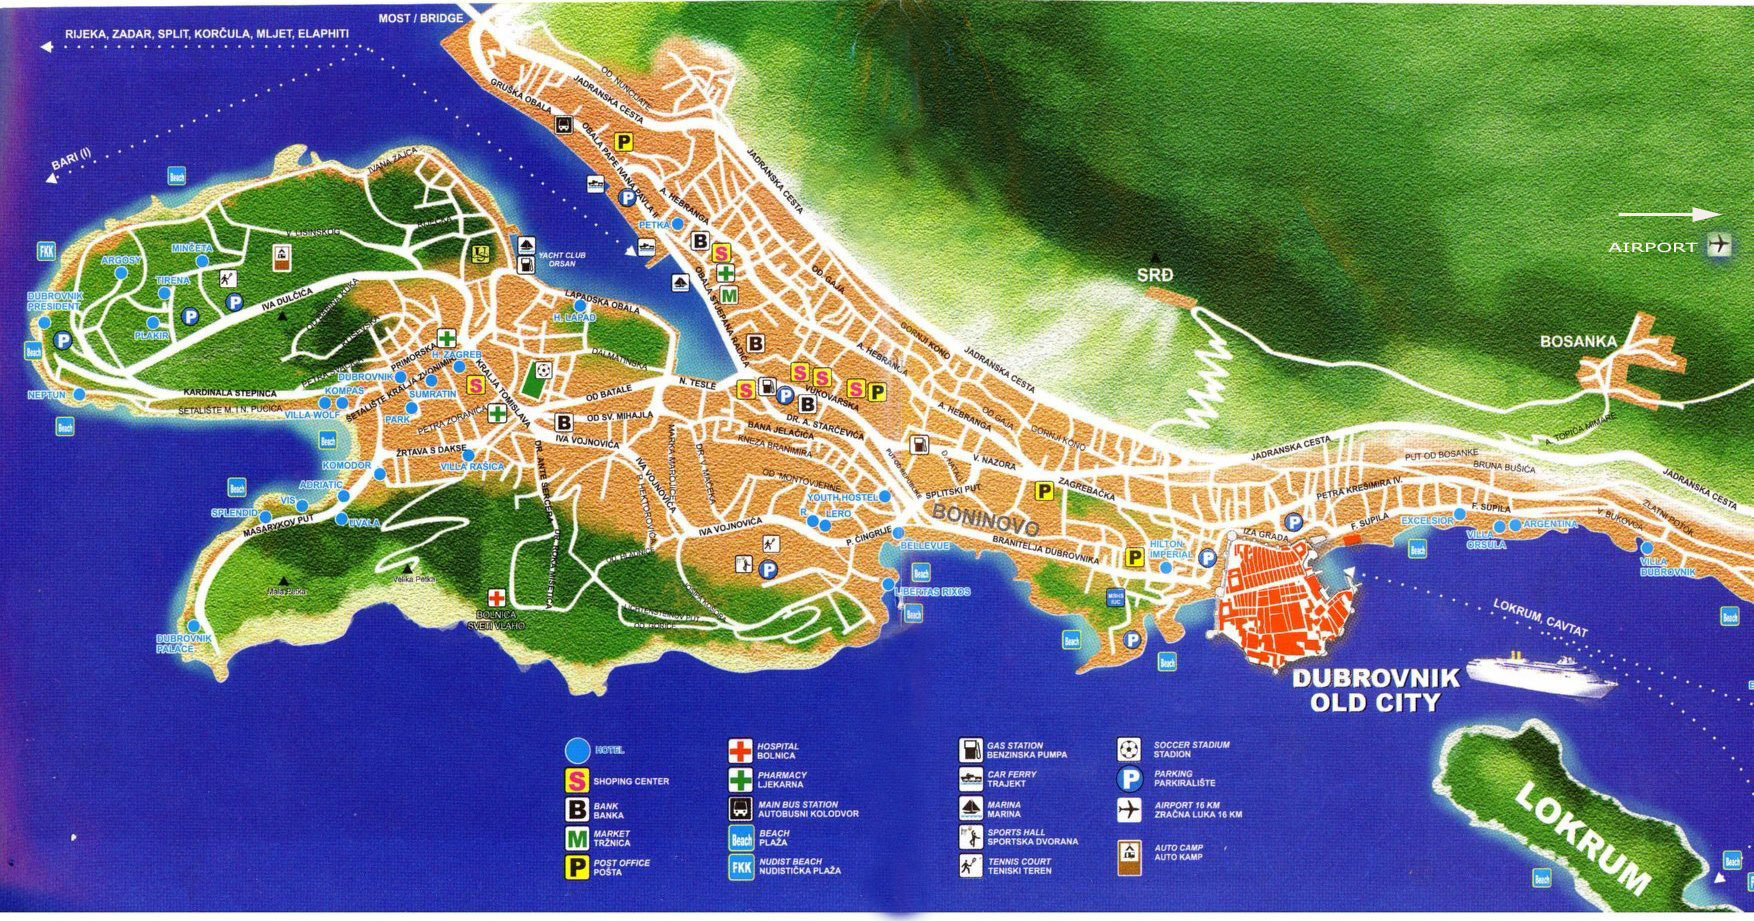 Dubrovnik cruise port of call map gumiabroncs Choice Image